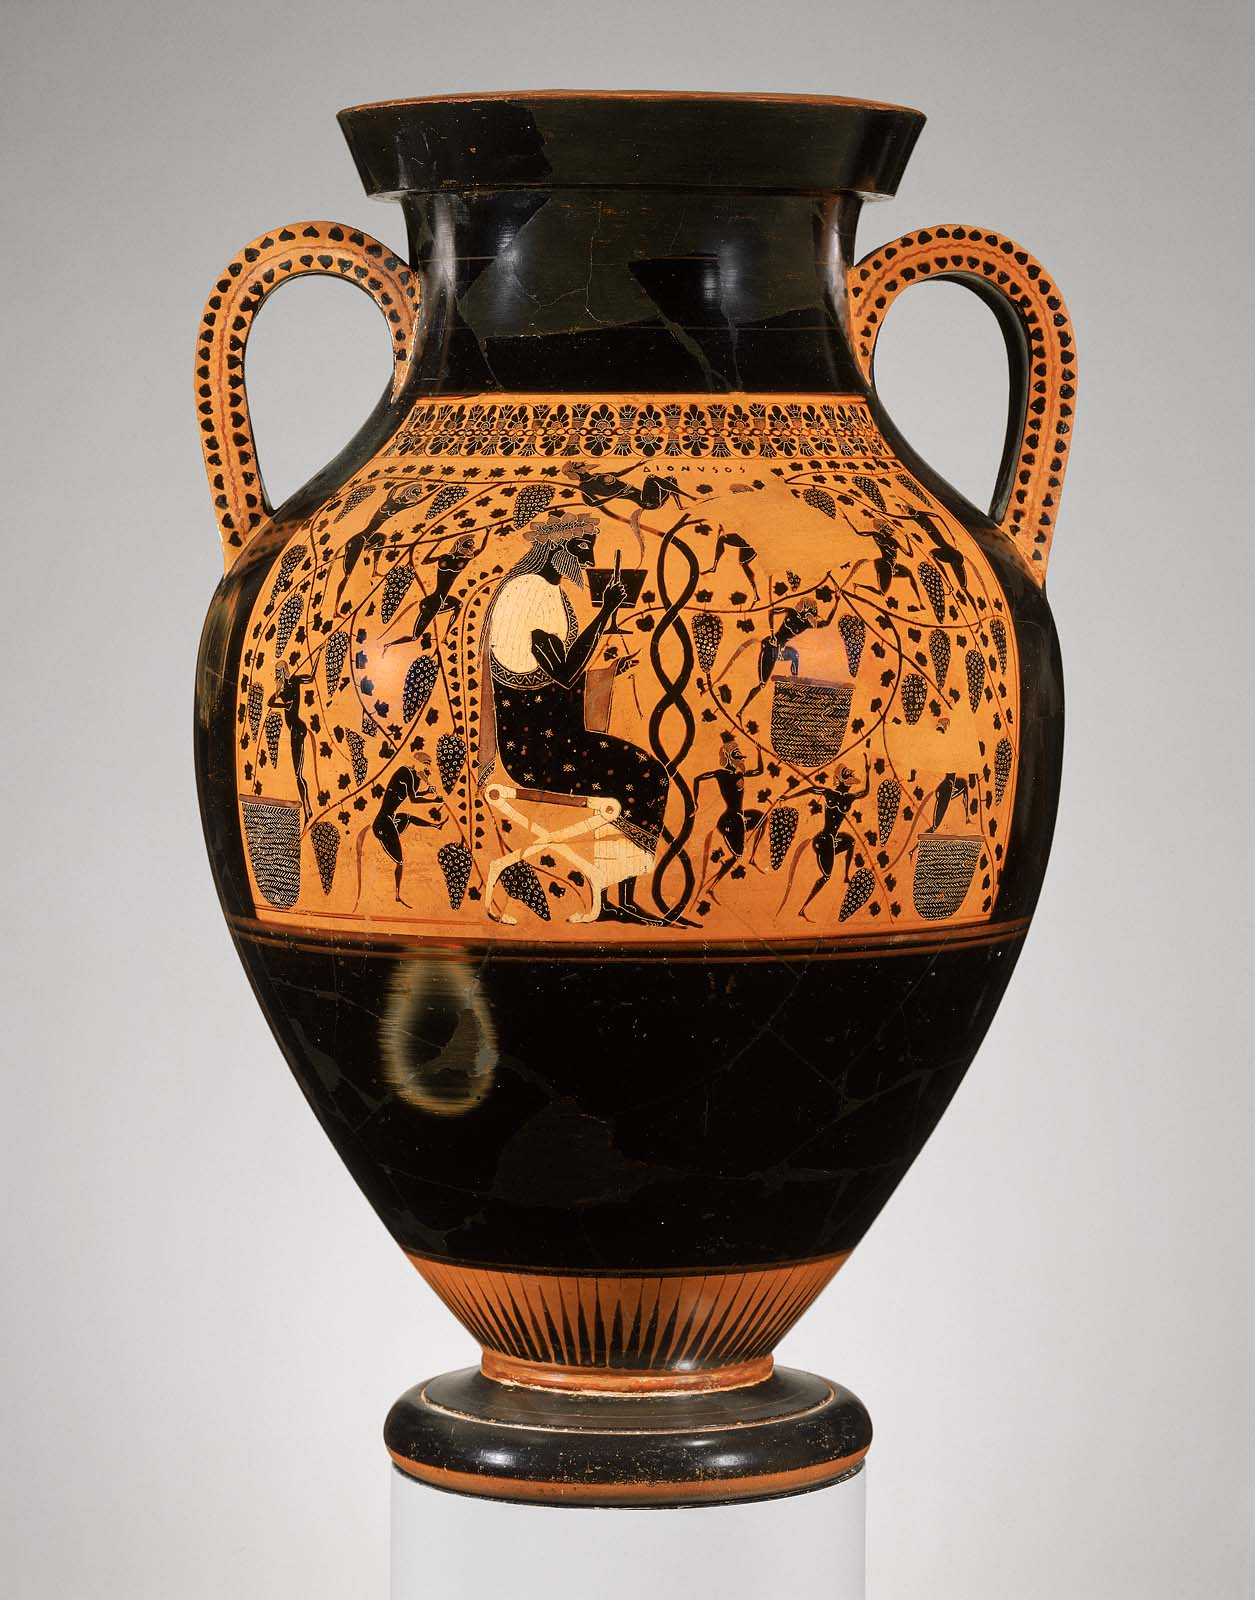 Two handled jar amphora museum of fine arts boston you are here reviewsmspy